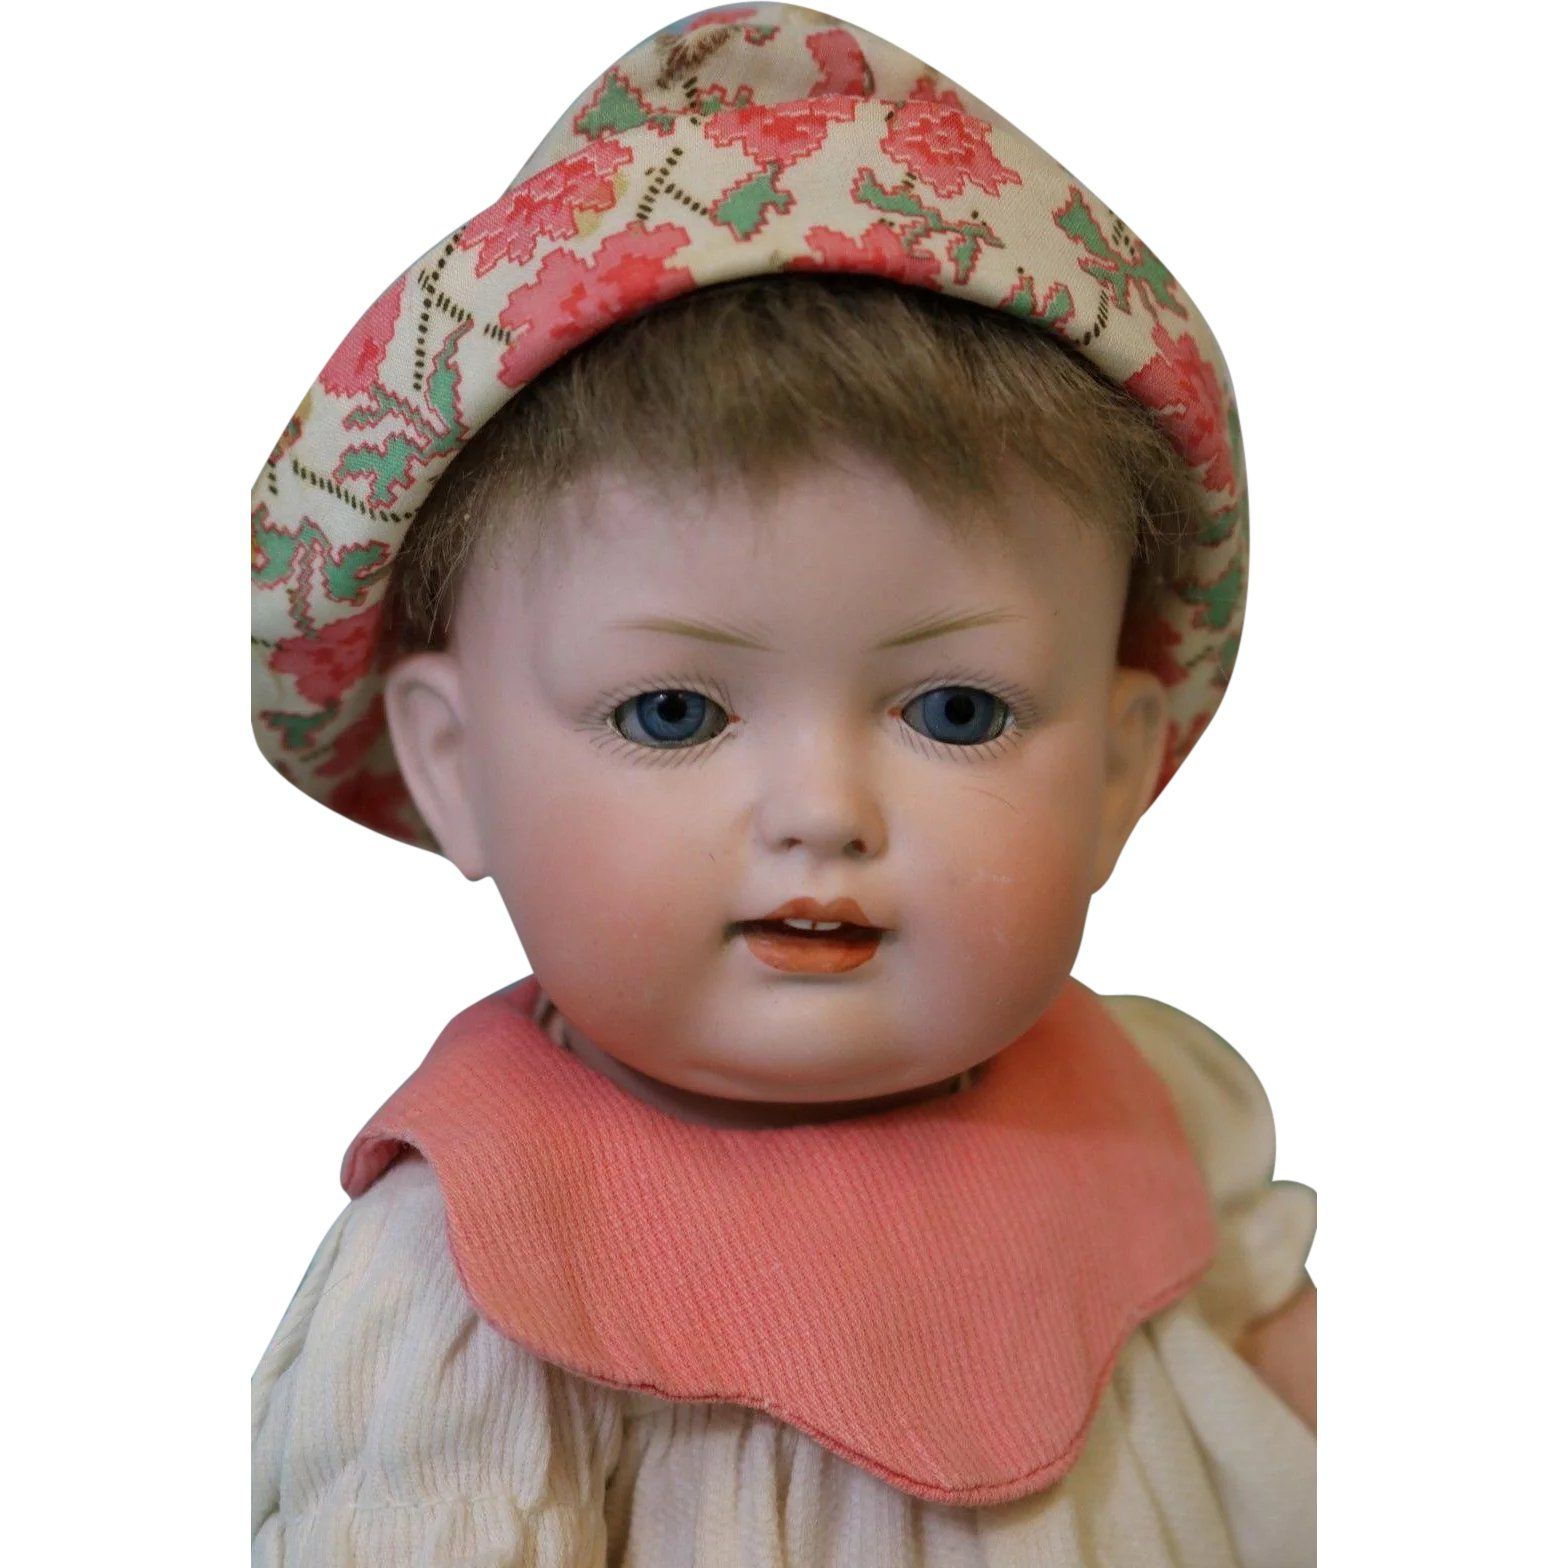 Antique 11 Inch Bahr Proschild German Bisque Baby Doll 604 Well Dressed Clean Dolls Baby Dolls Dress Cleaning